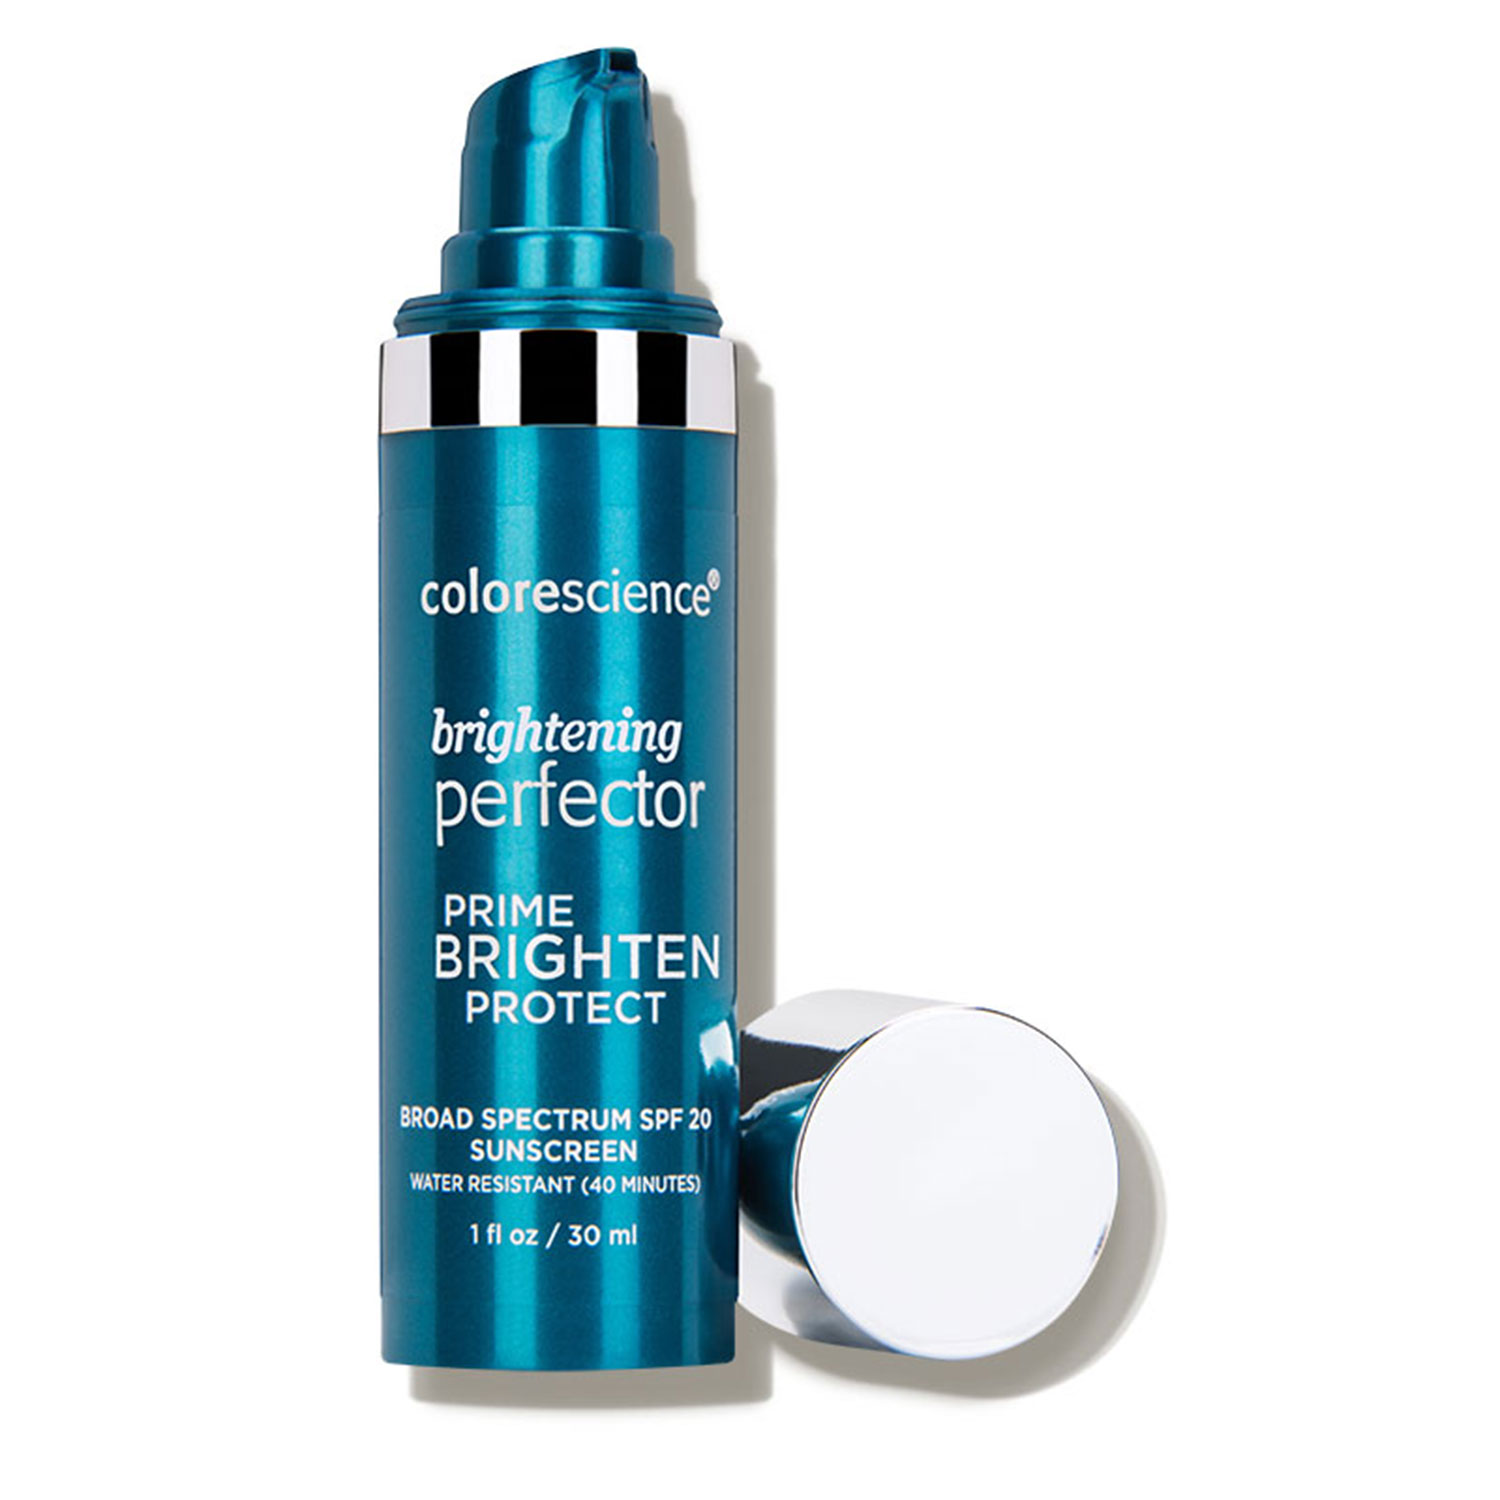 colorscience brightening perfector